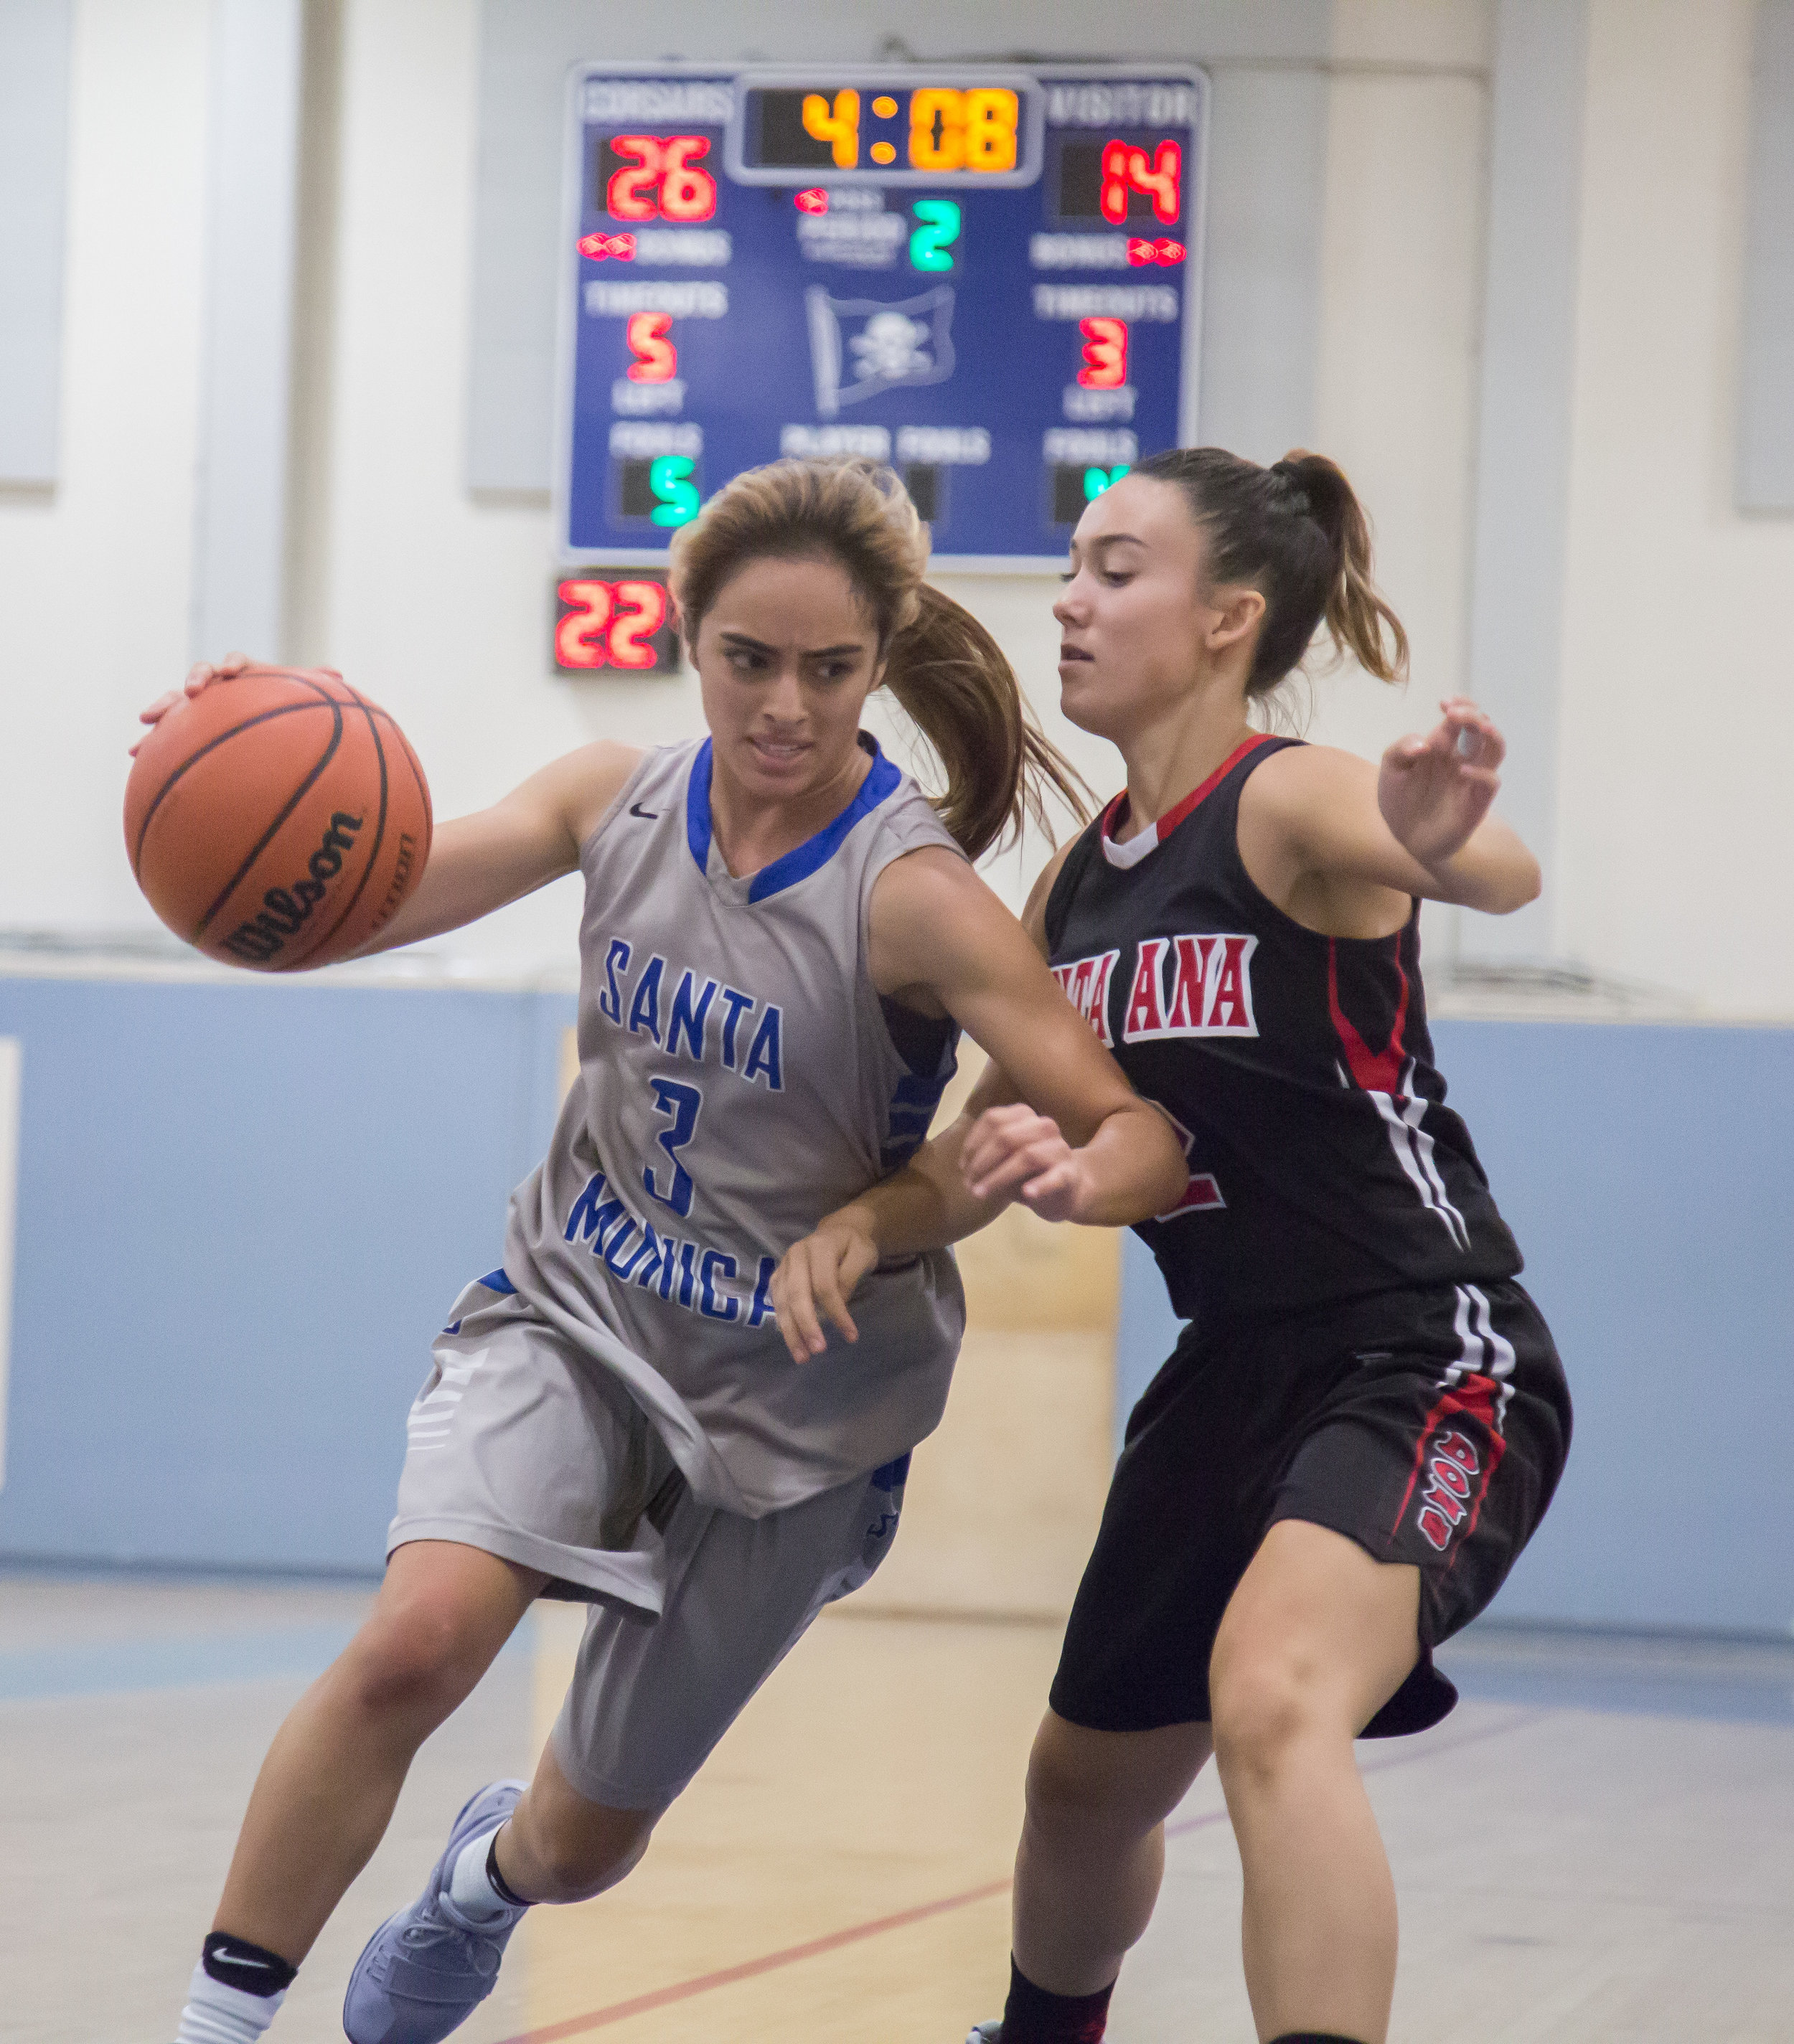 Guard Luna Rivera (3) of Santa Monica College Corsairs attempt to evade block by Guard Sally Morris (2) of Santa Ana College during 2nd period of their 2nd game of the season. Santa Monica College Corsairs win the game 63-54 against Santa Ana College. On Saturday, November 4th, 2017 at the SMC Pavilion on the Santa Monica College Main Campus in Santa Monica, California. (Photo by Yuki Iwamura)